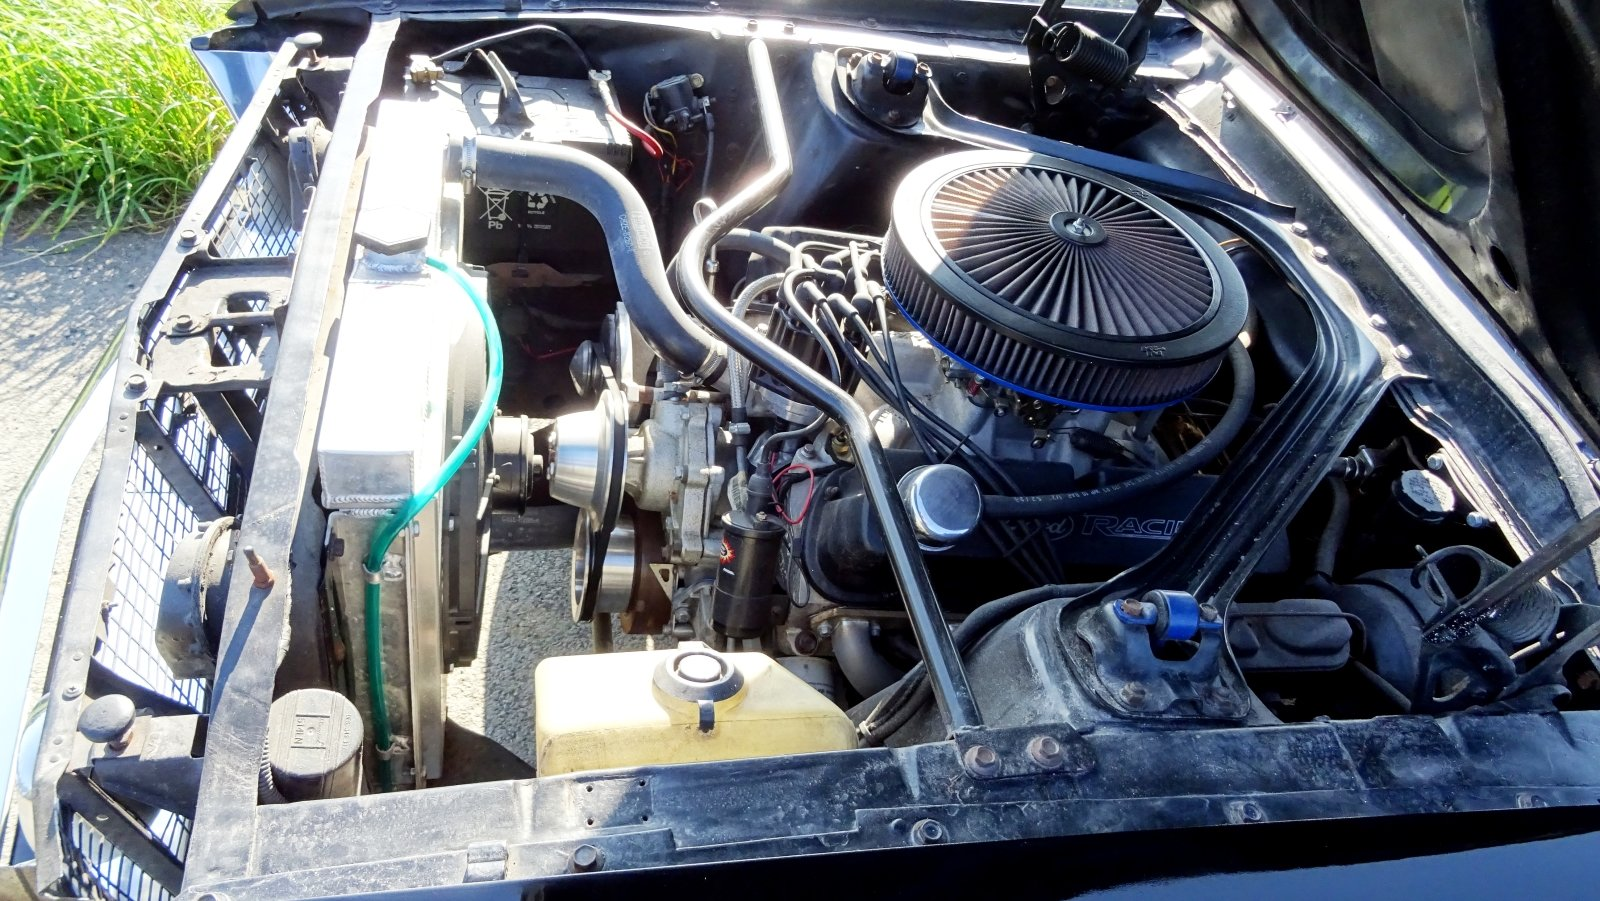 1968 AWESOME FORD MUSTANG AMERICAN V8 CLASSIC MUSCLE CAR For Sale (picture 9 of 12)